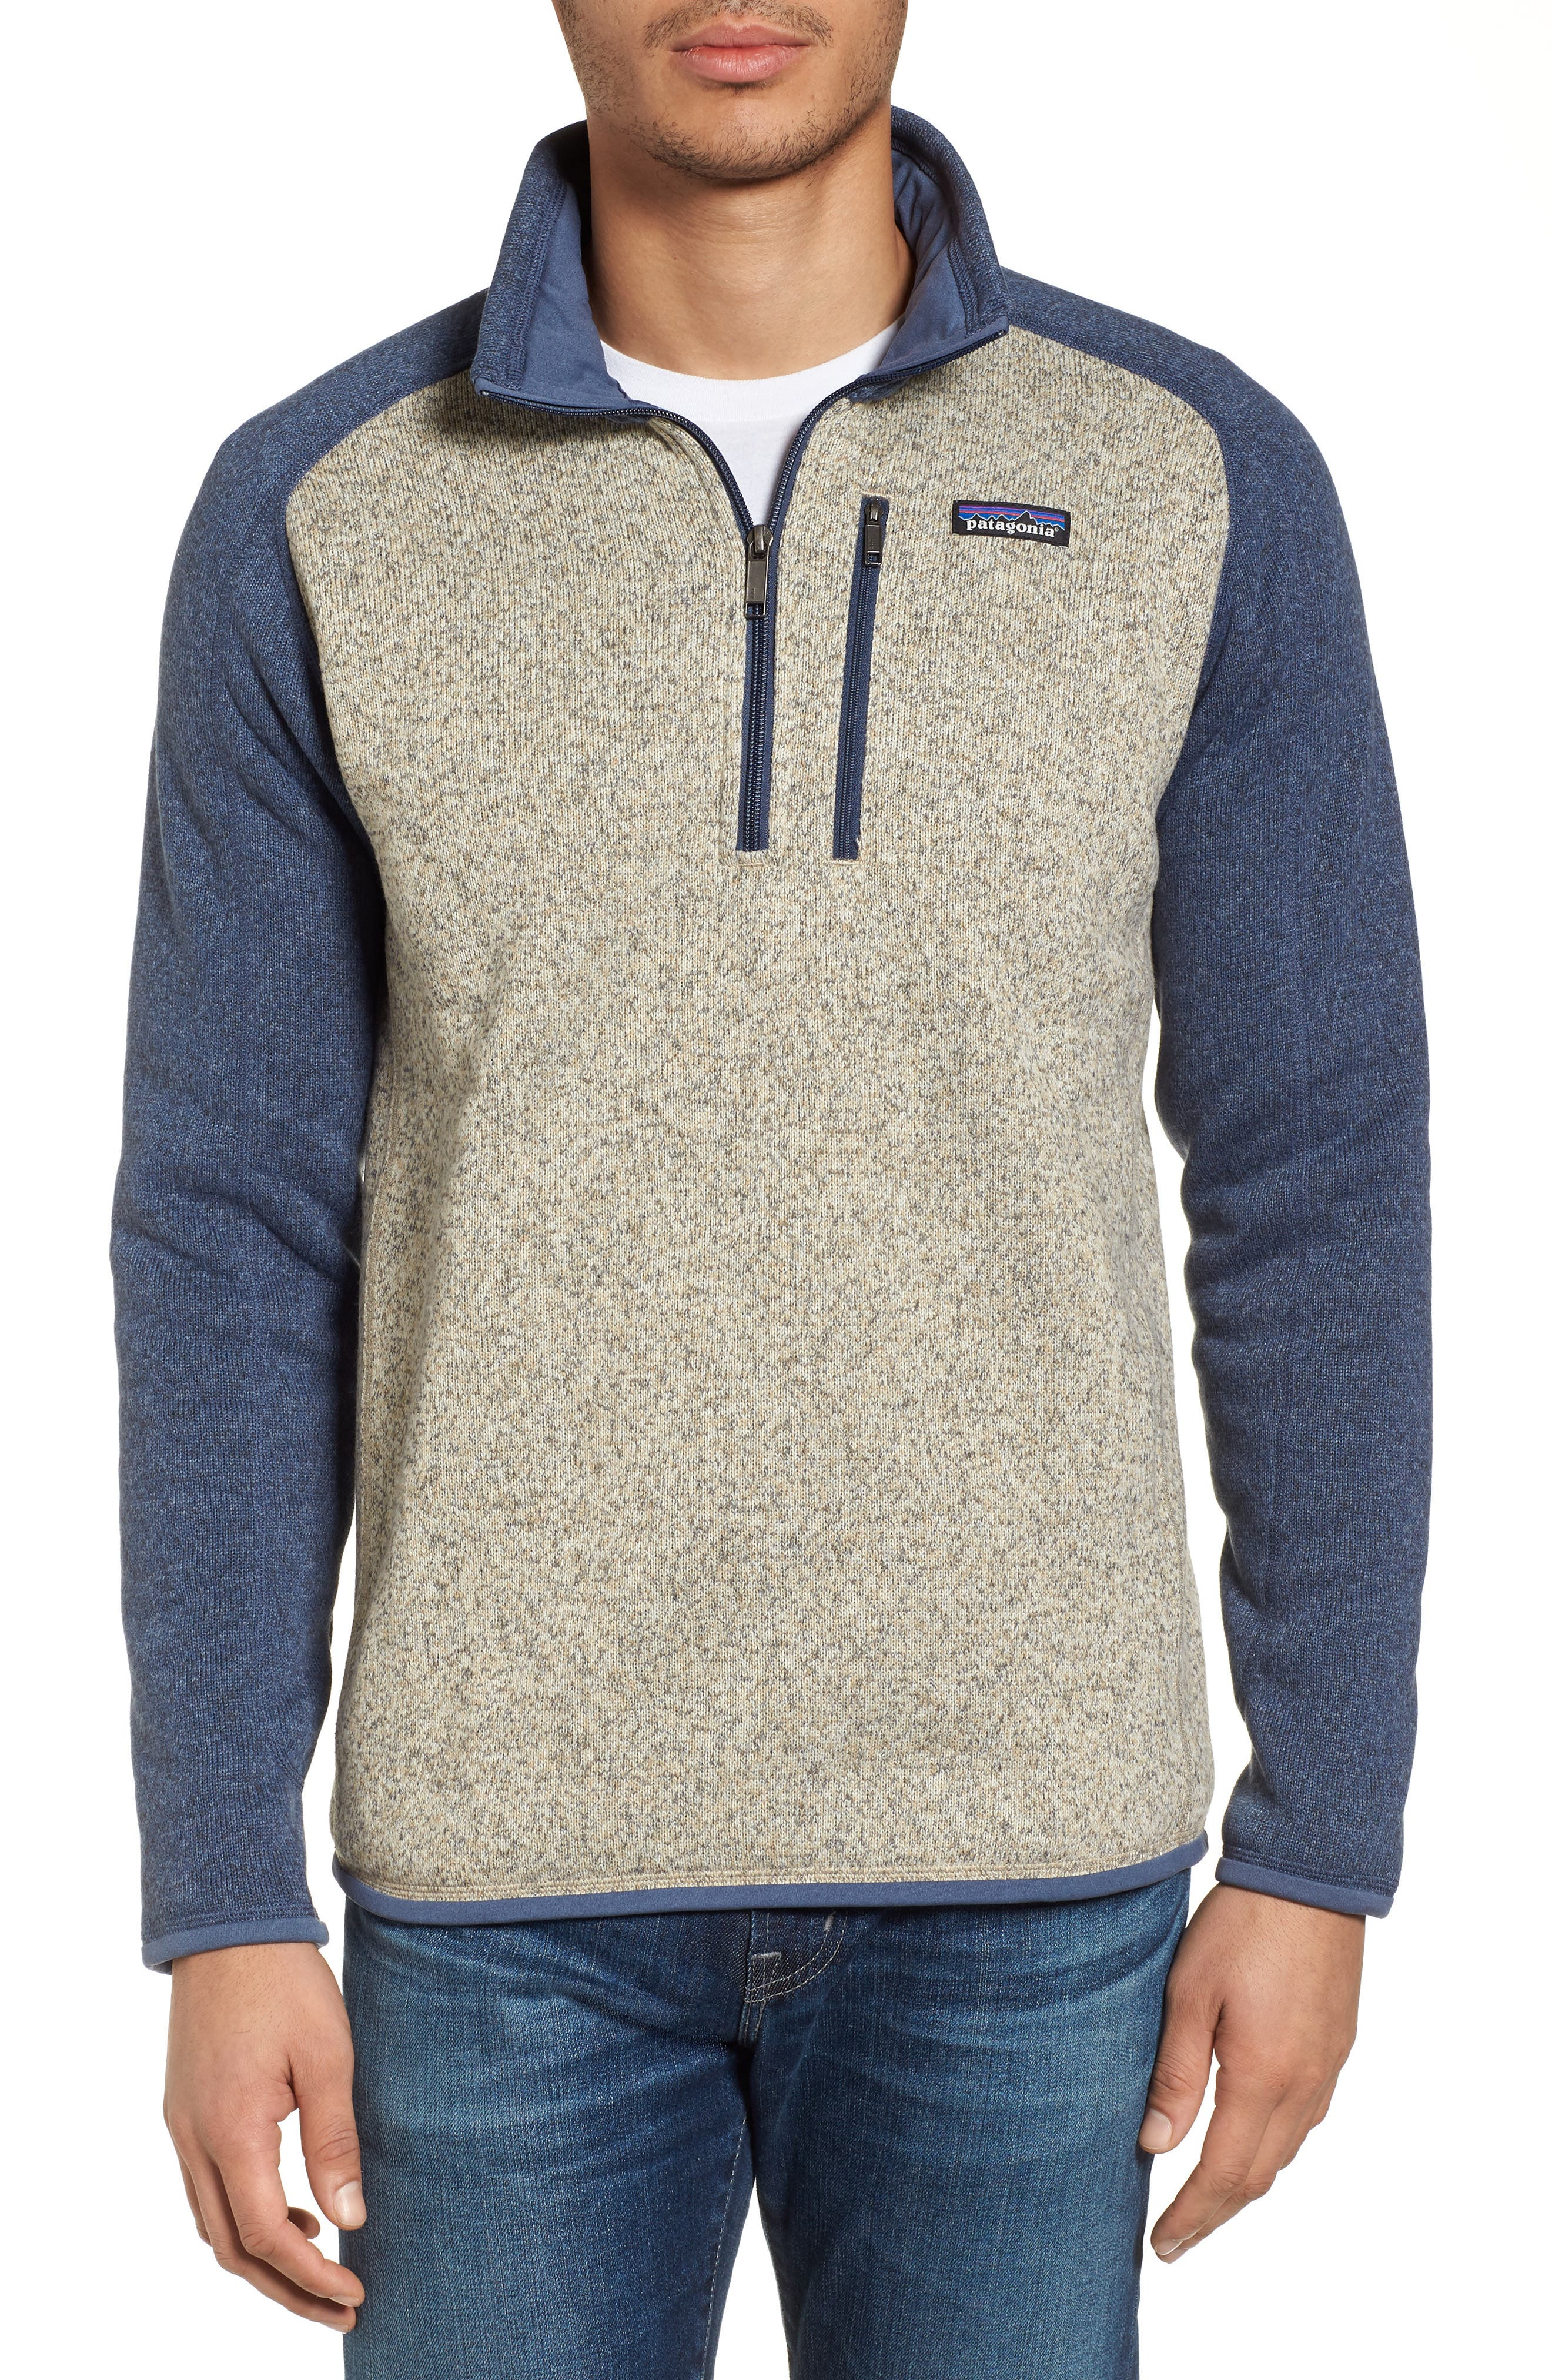 PATAGONIA, Better Sweater Quarter Zip Pullover, Main thumbnail 1, color, BLEACHED STONE W/DOLOMITE BLUE